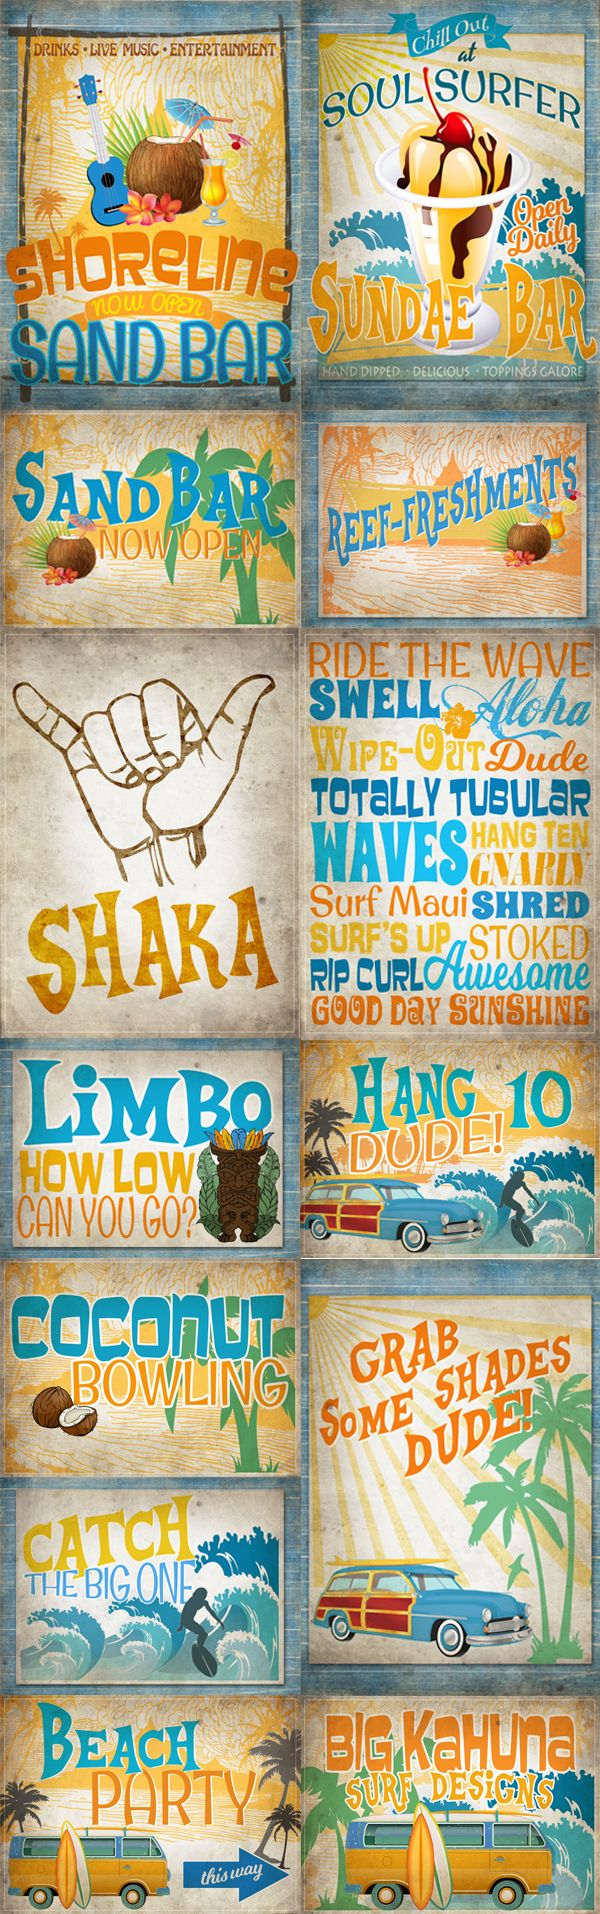 Surf's Up dude! Vintage Surf Printable Party Posters - Grab them at Sassaby Parties